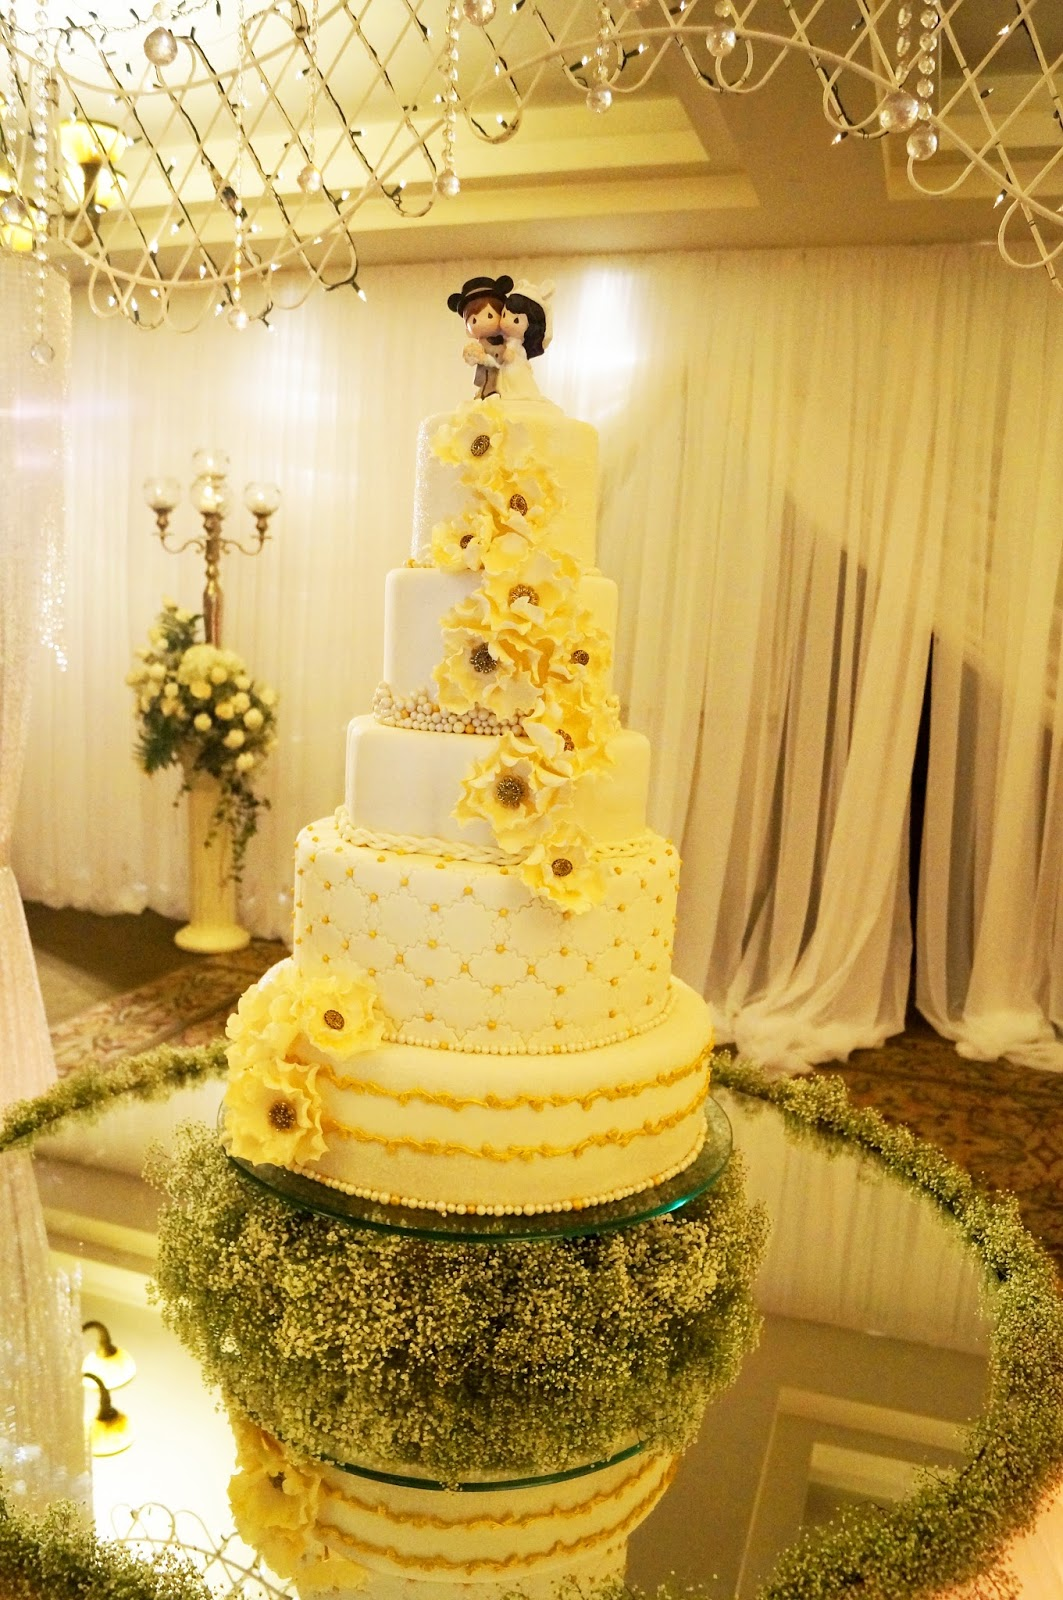 Glamorous Wedding Cake with Disney Cake Topper